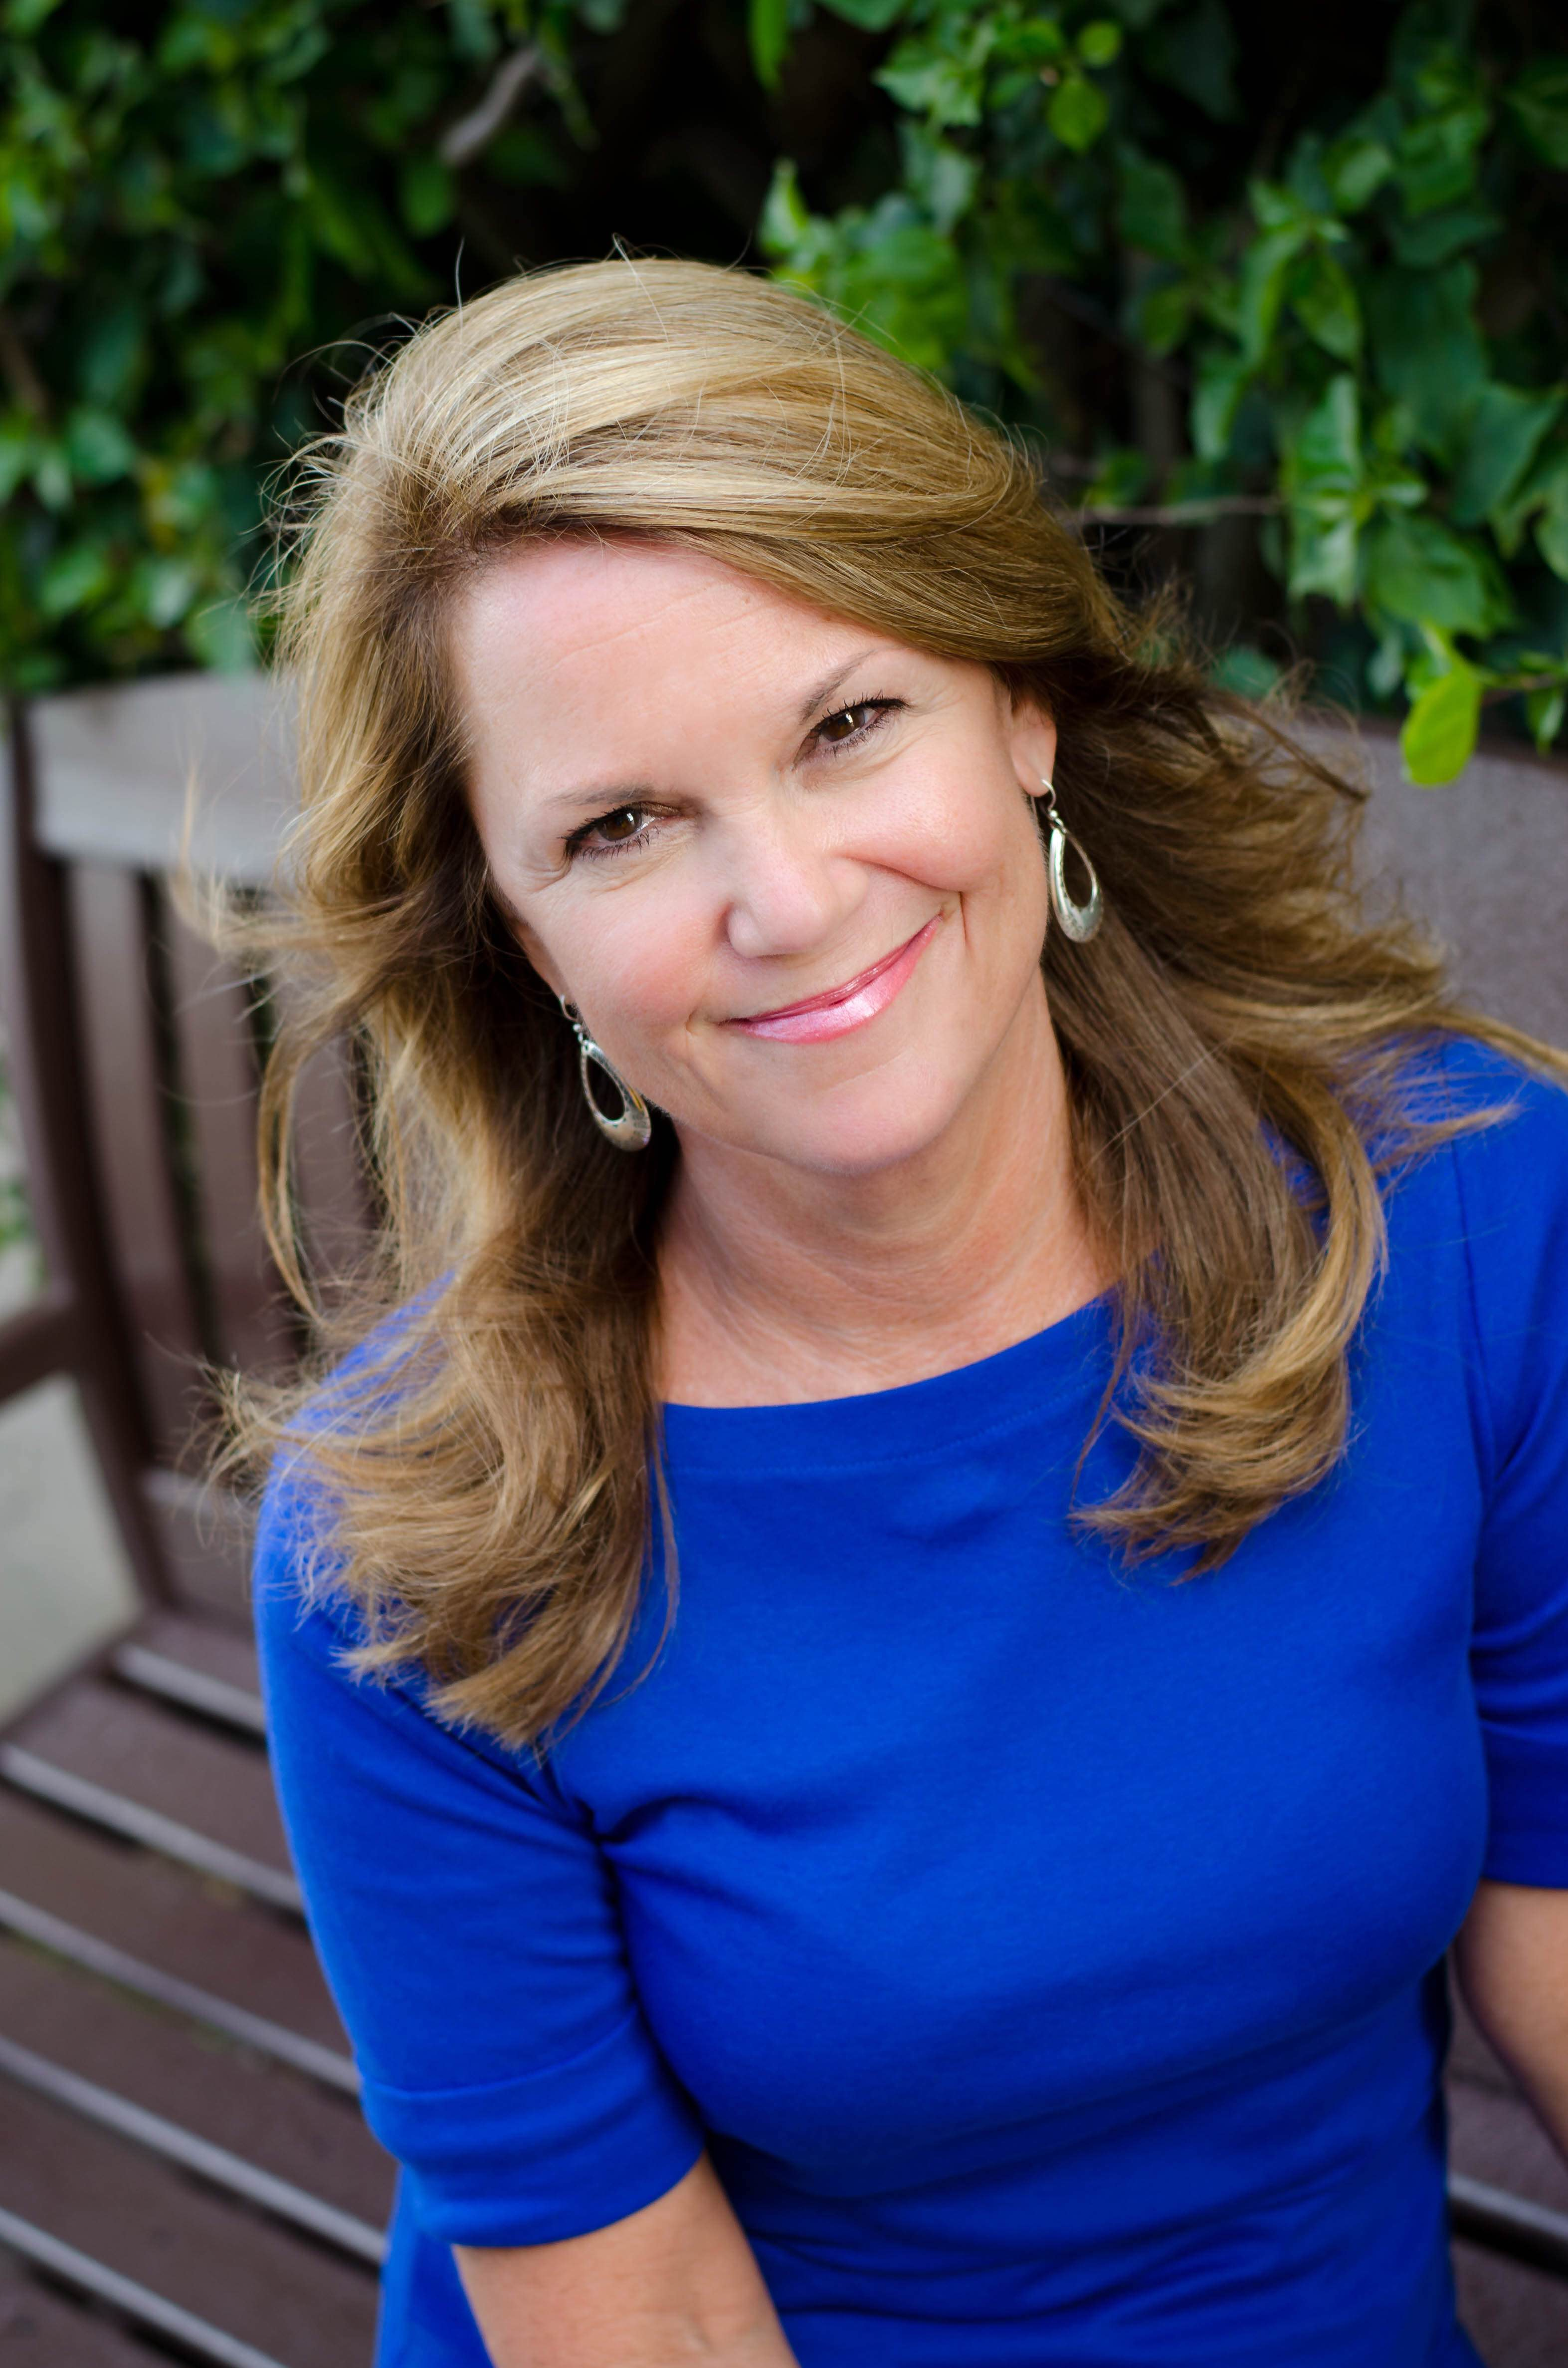 Melissa Jansen, BS Board Certified Life Coach at Reflections Counseling & Coaching Center